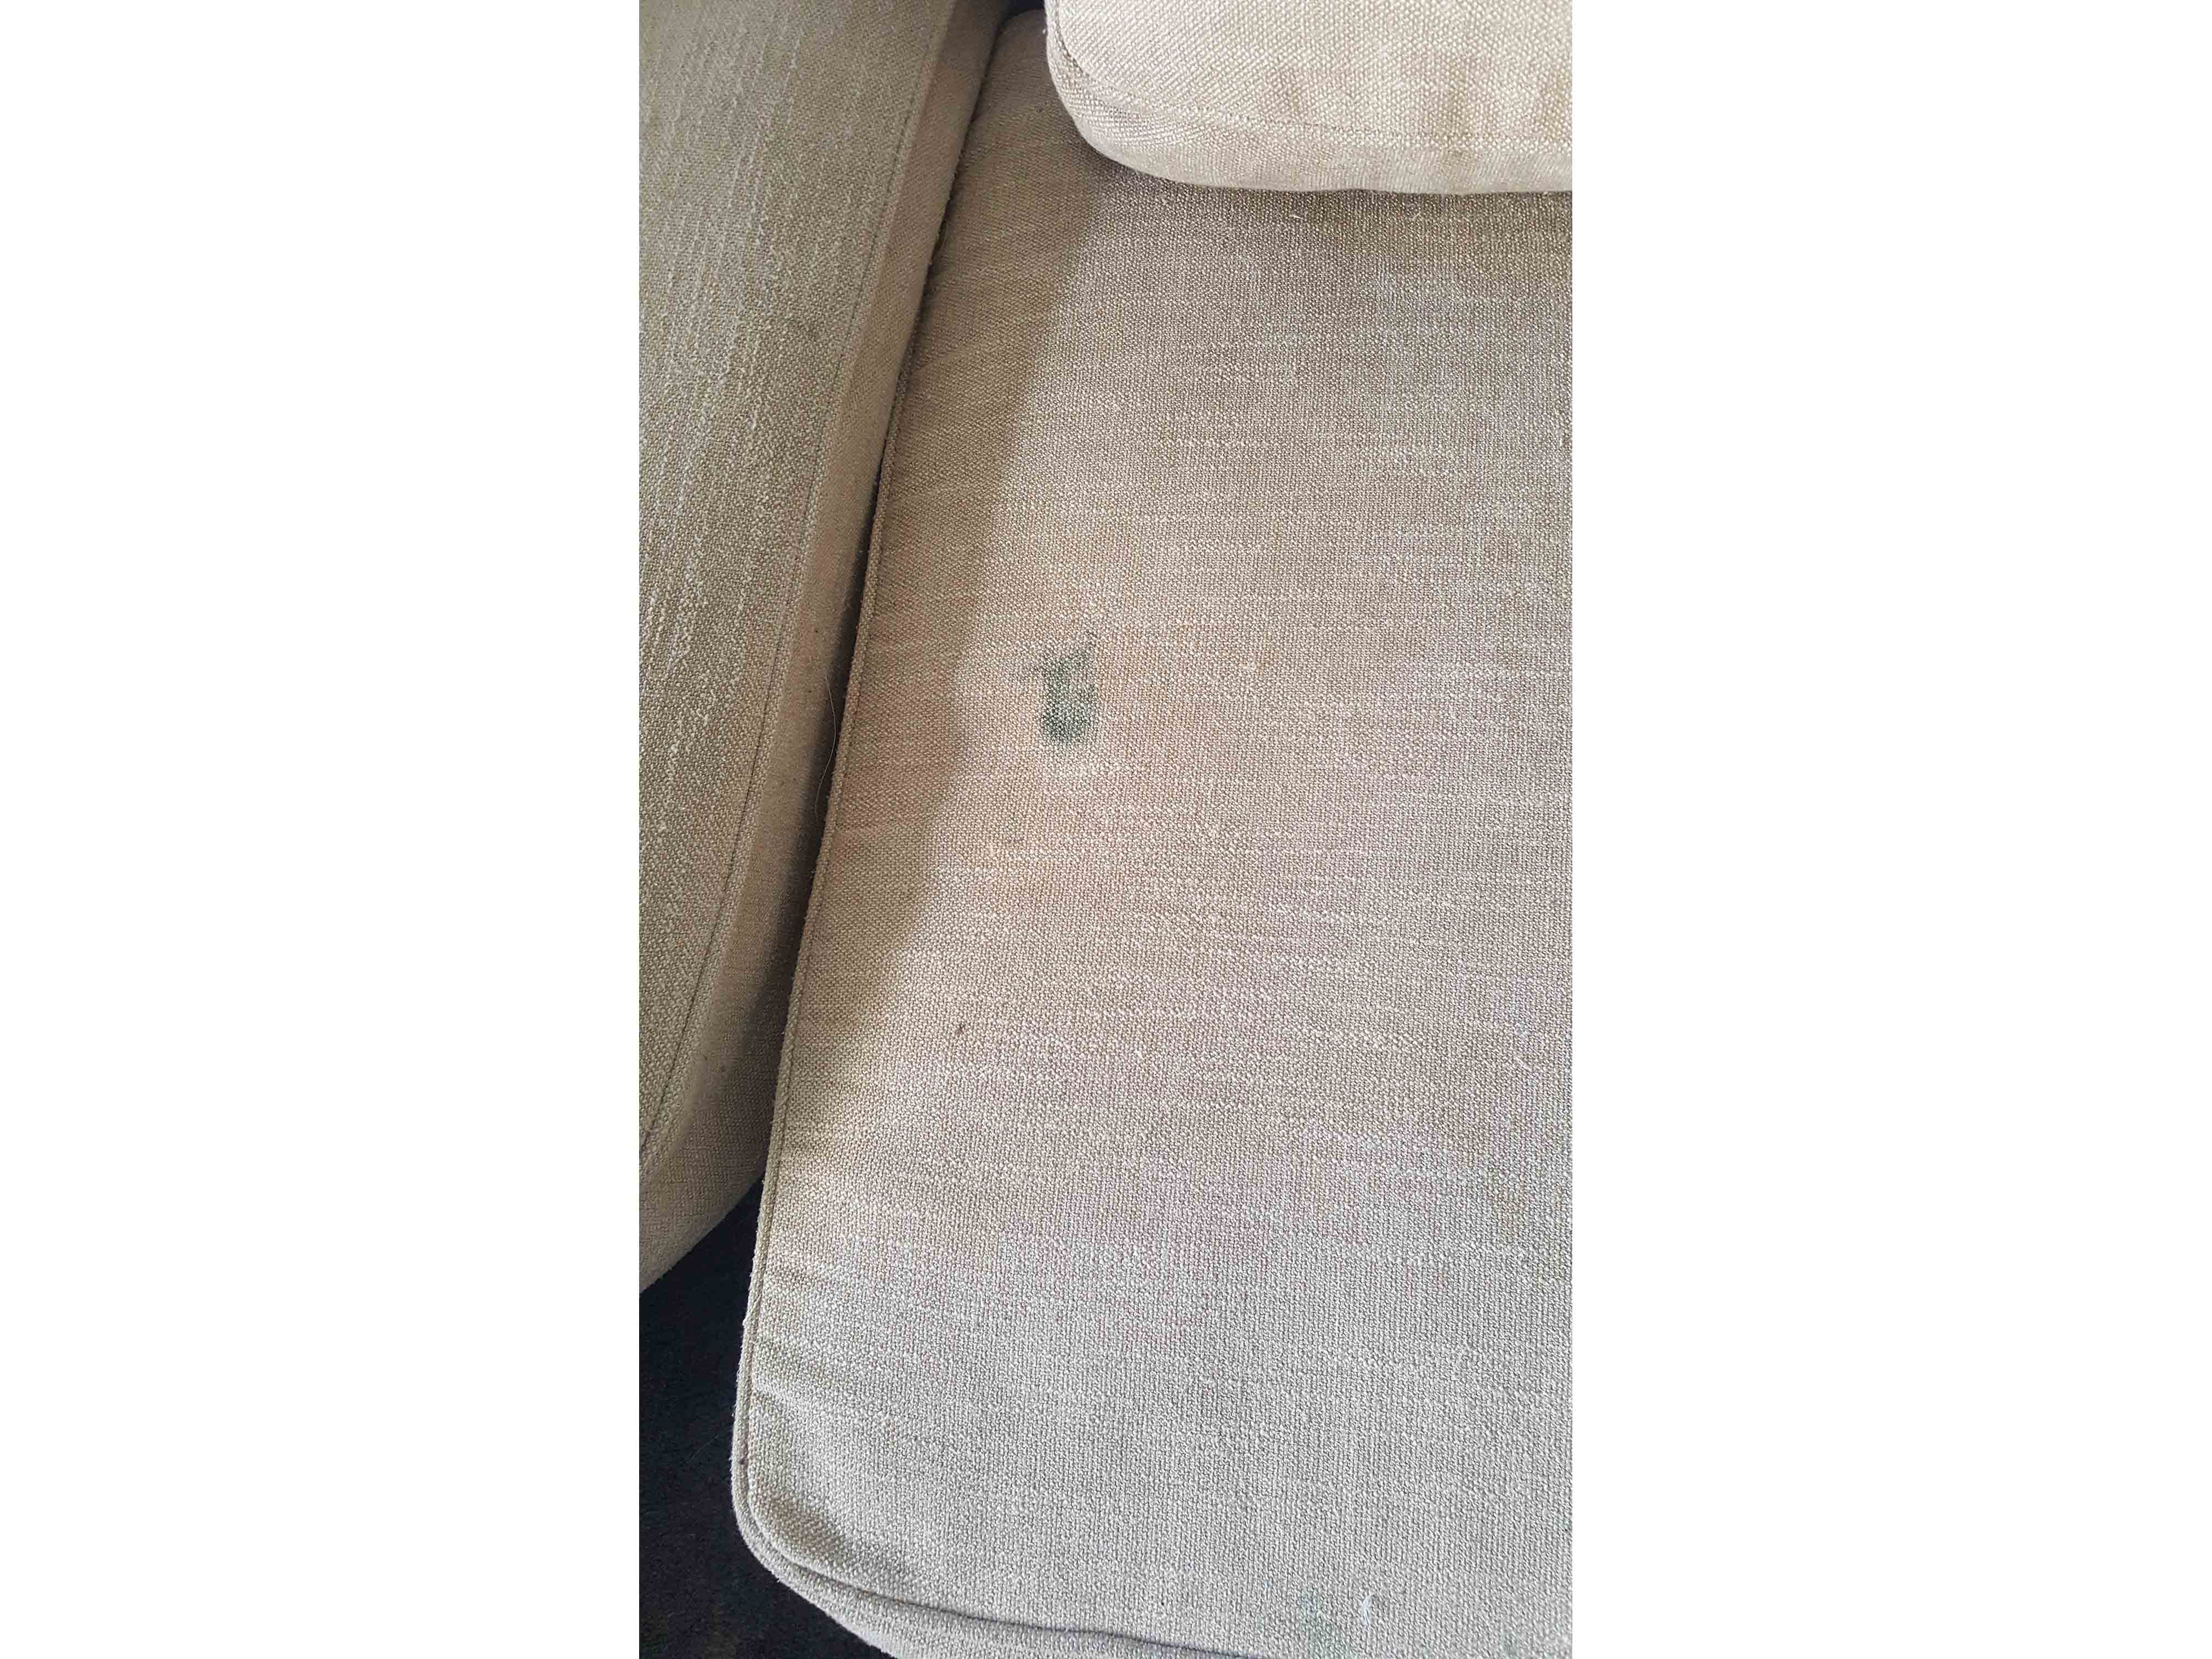 Upholstery Cleaning Professional Upholstery Cleaning Service